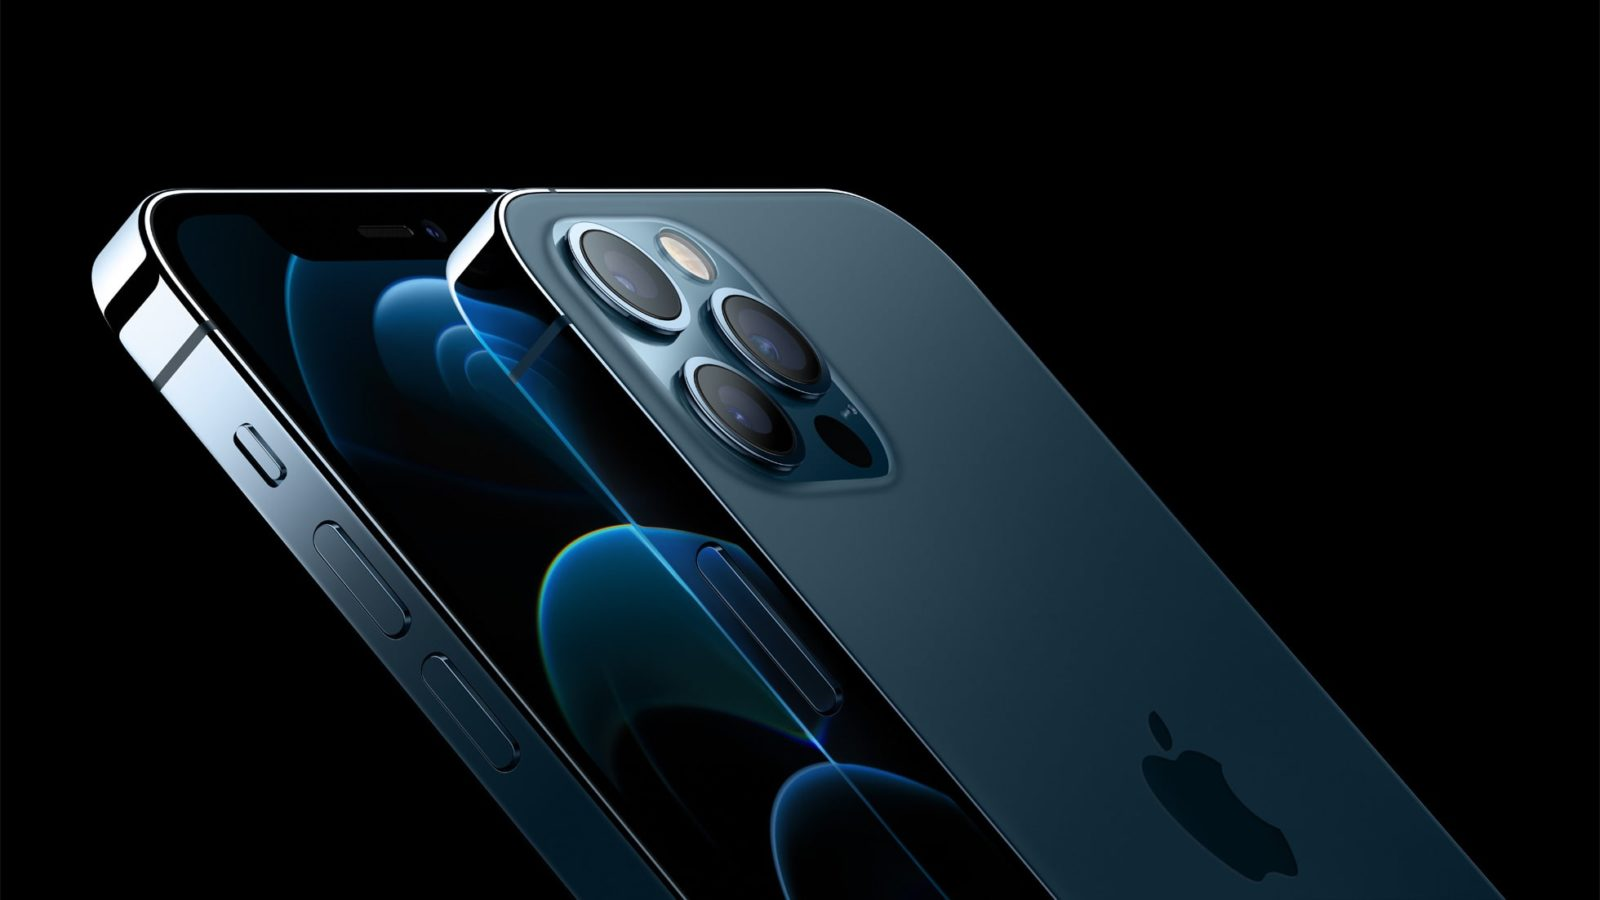 Review: Everything we loved about the Apple iPhone 12 Pro Max